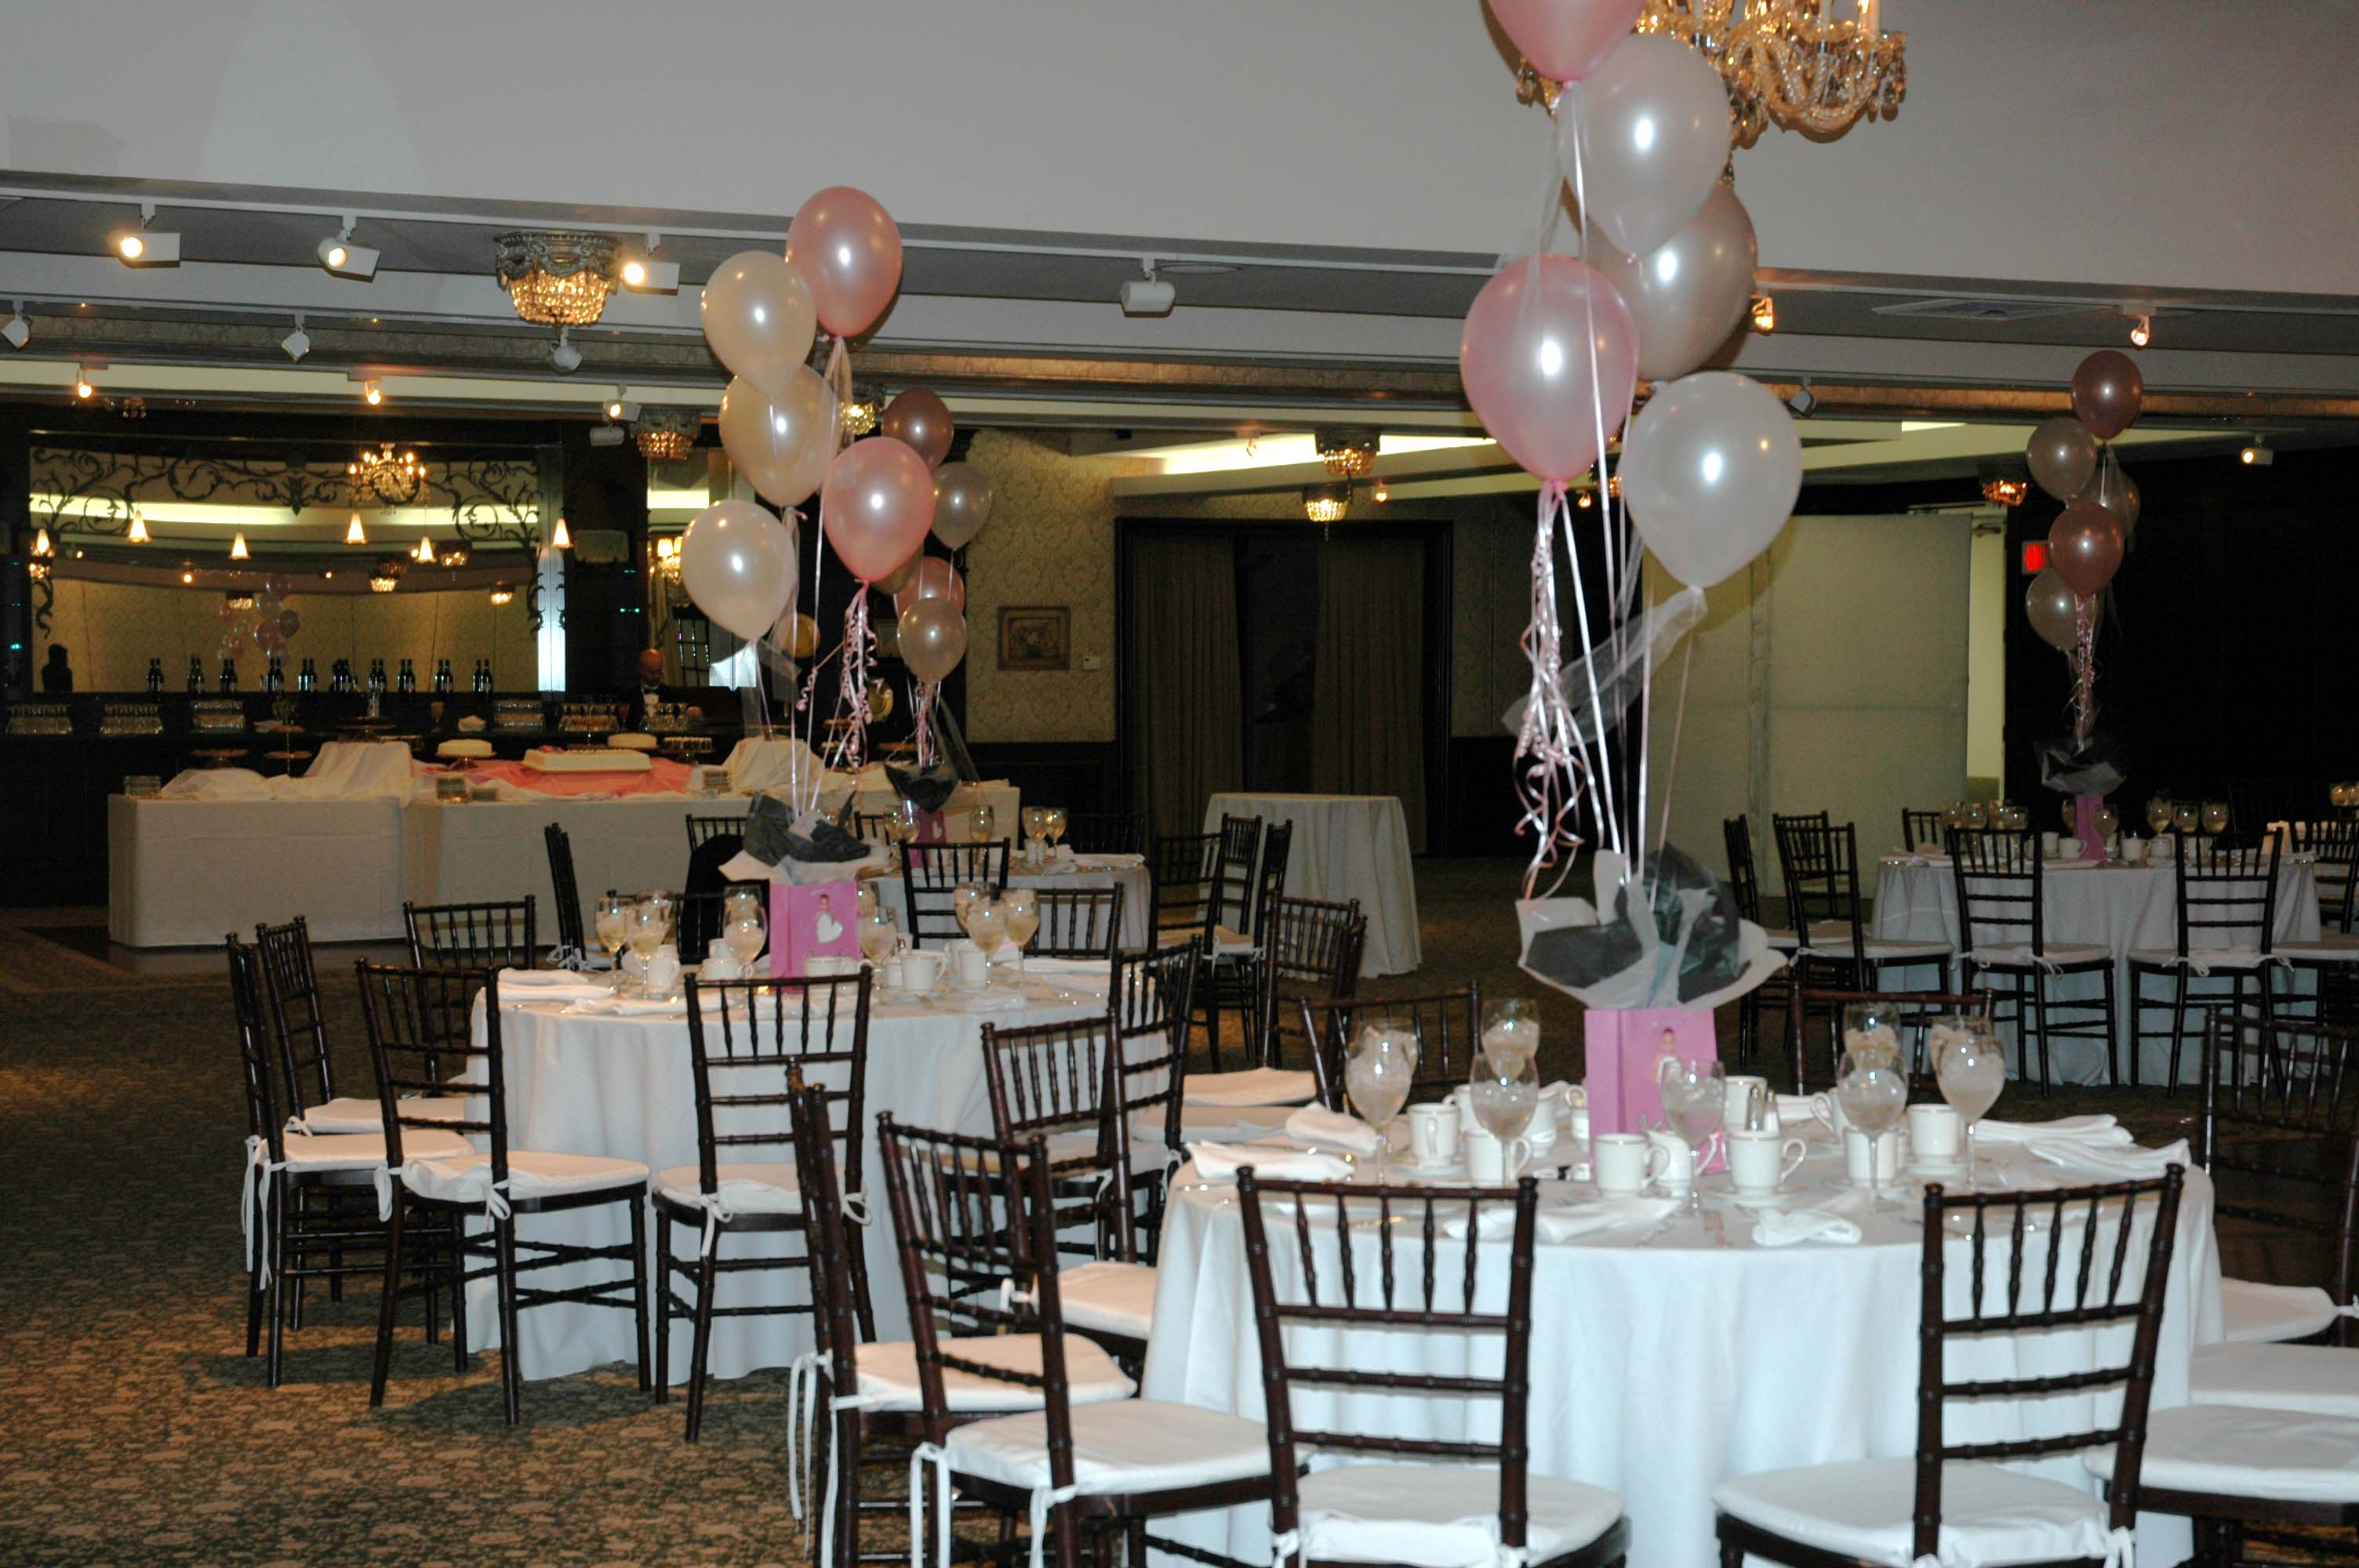 Attractive layouts for any size function